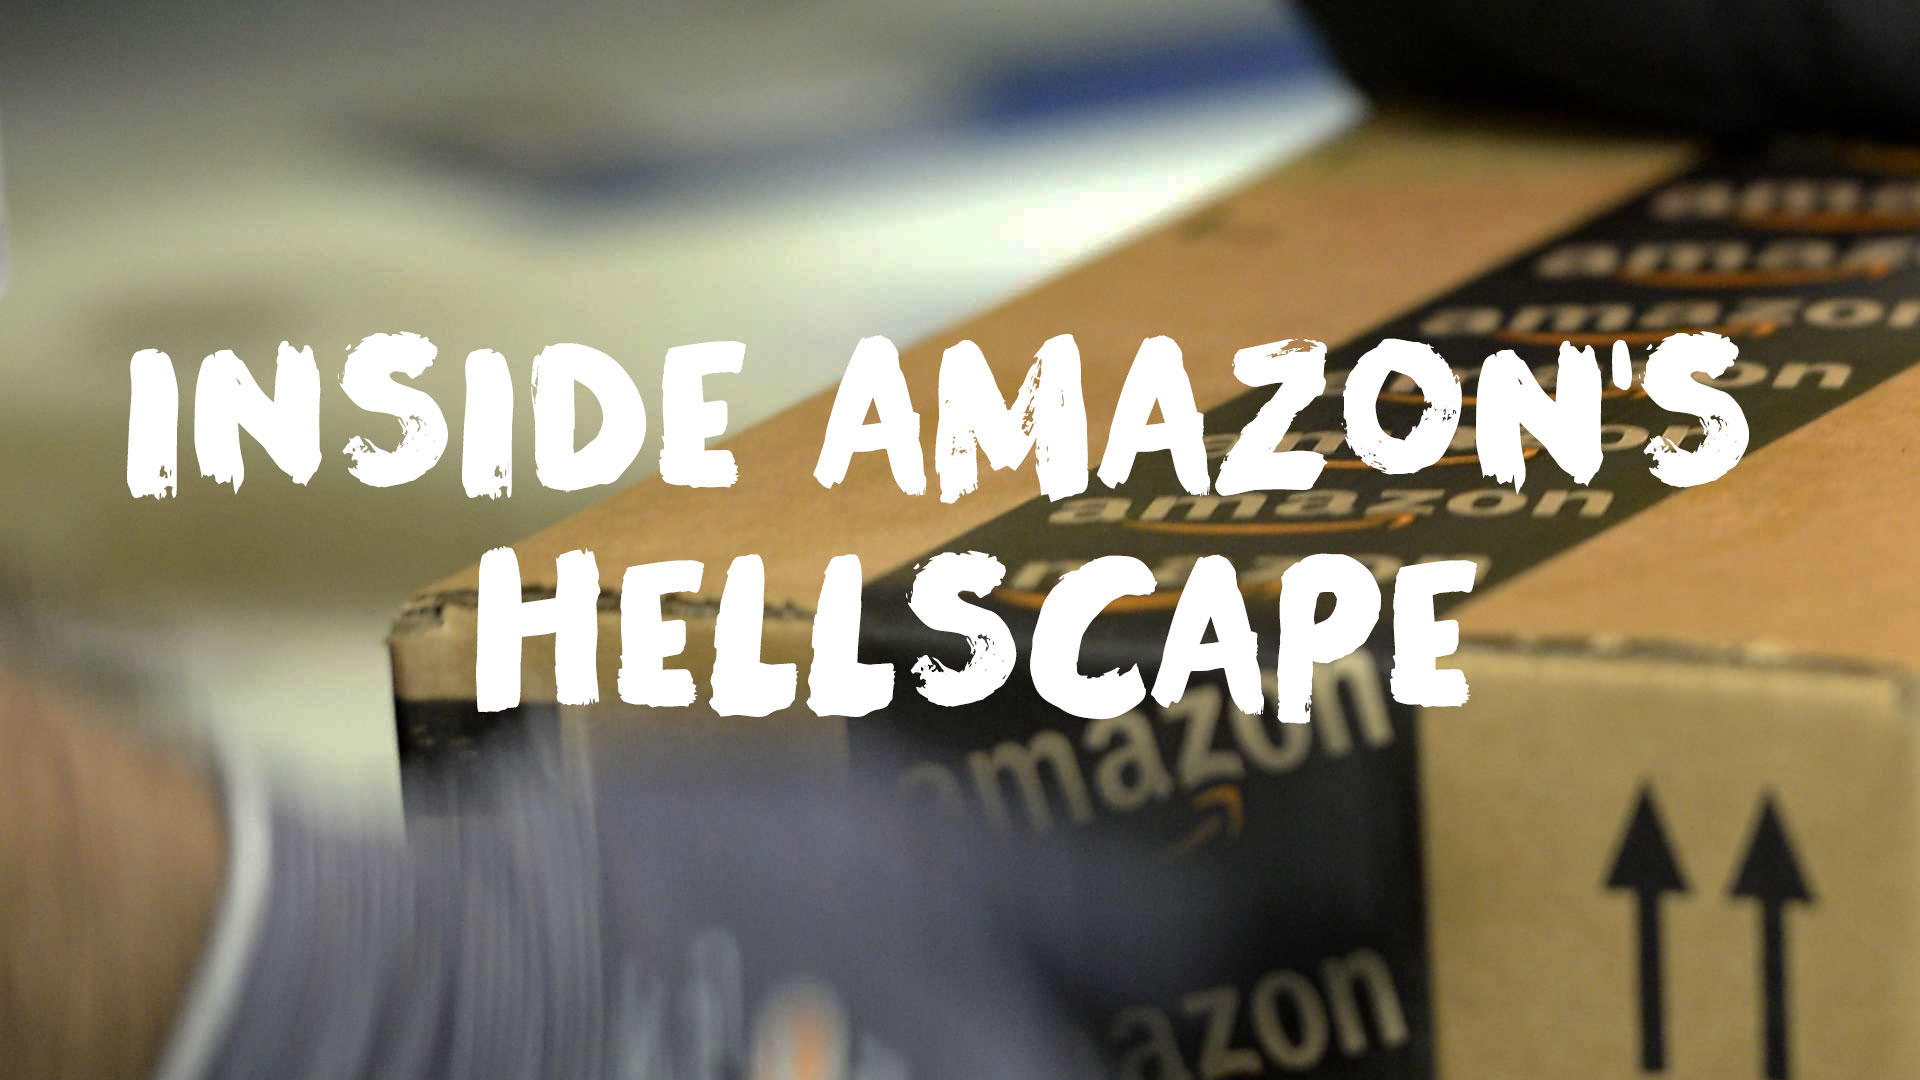 Inside Amazon's Hellscape